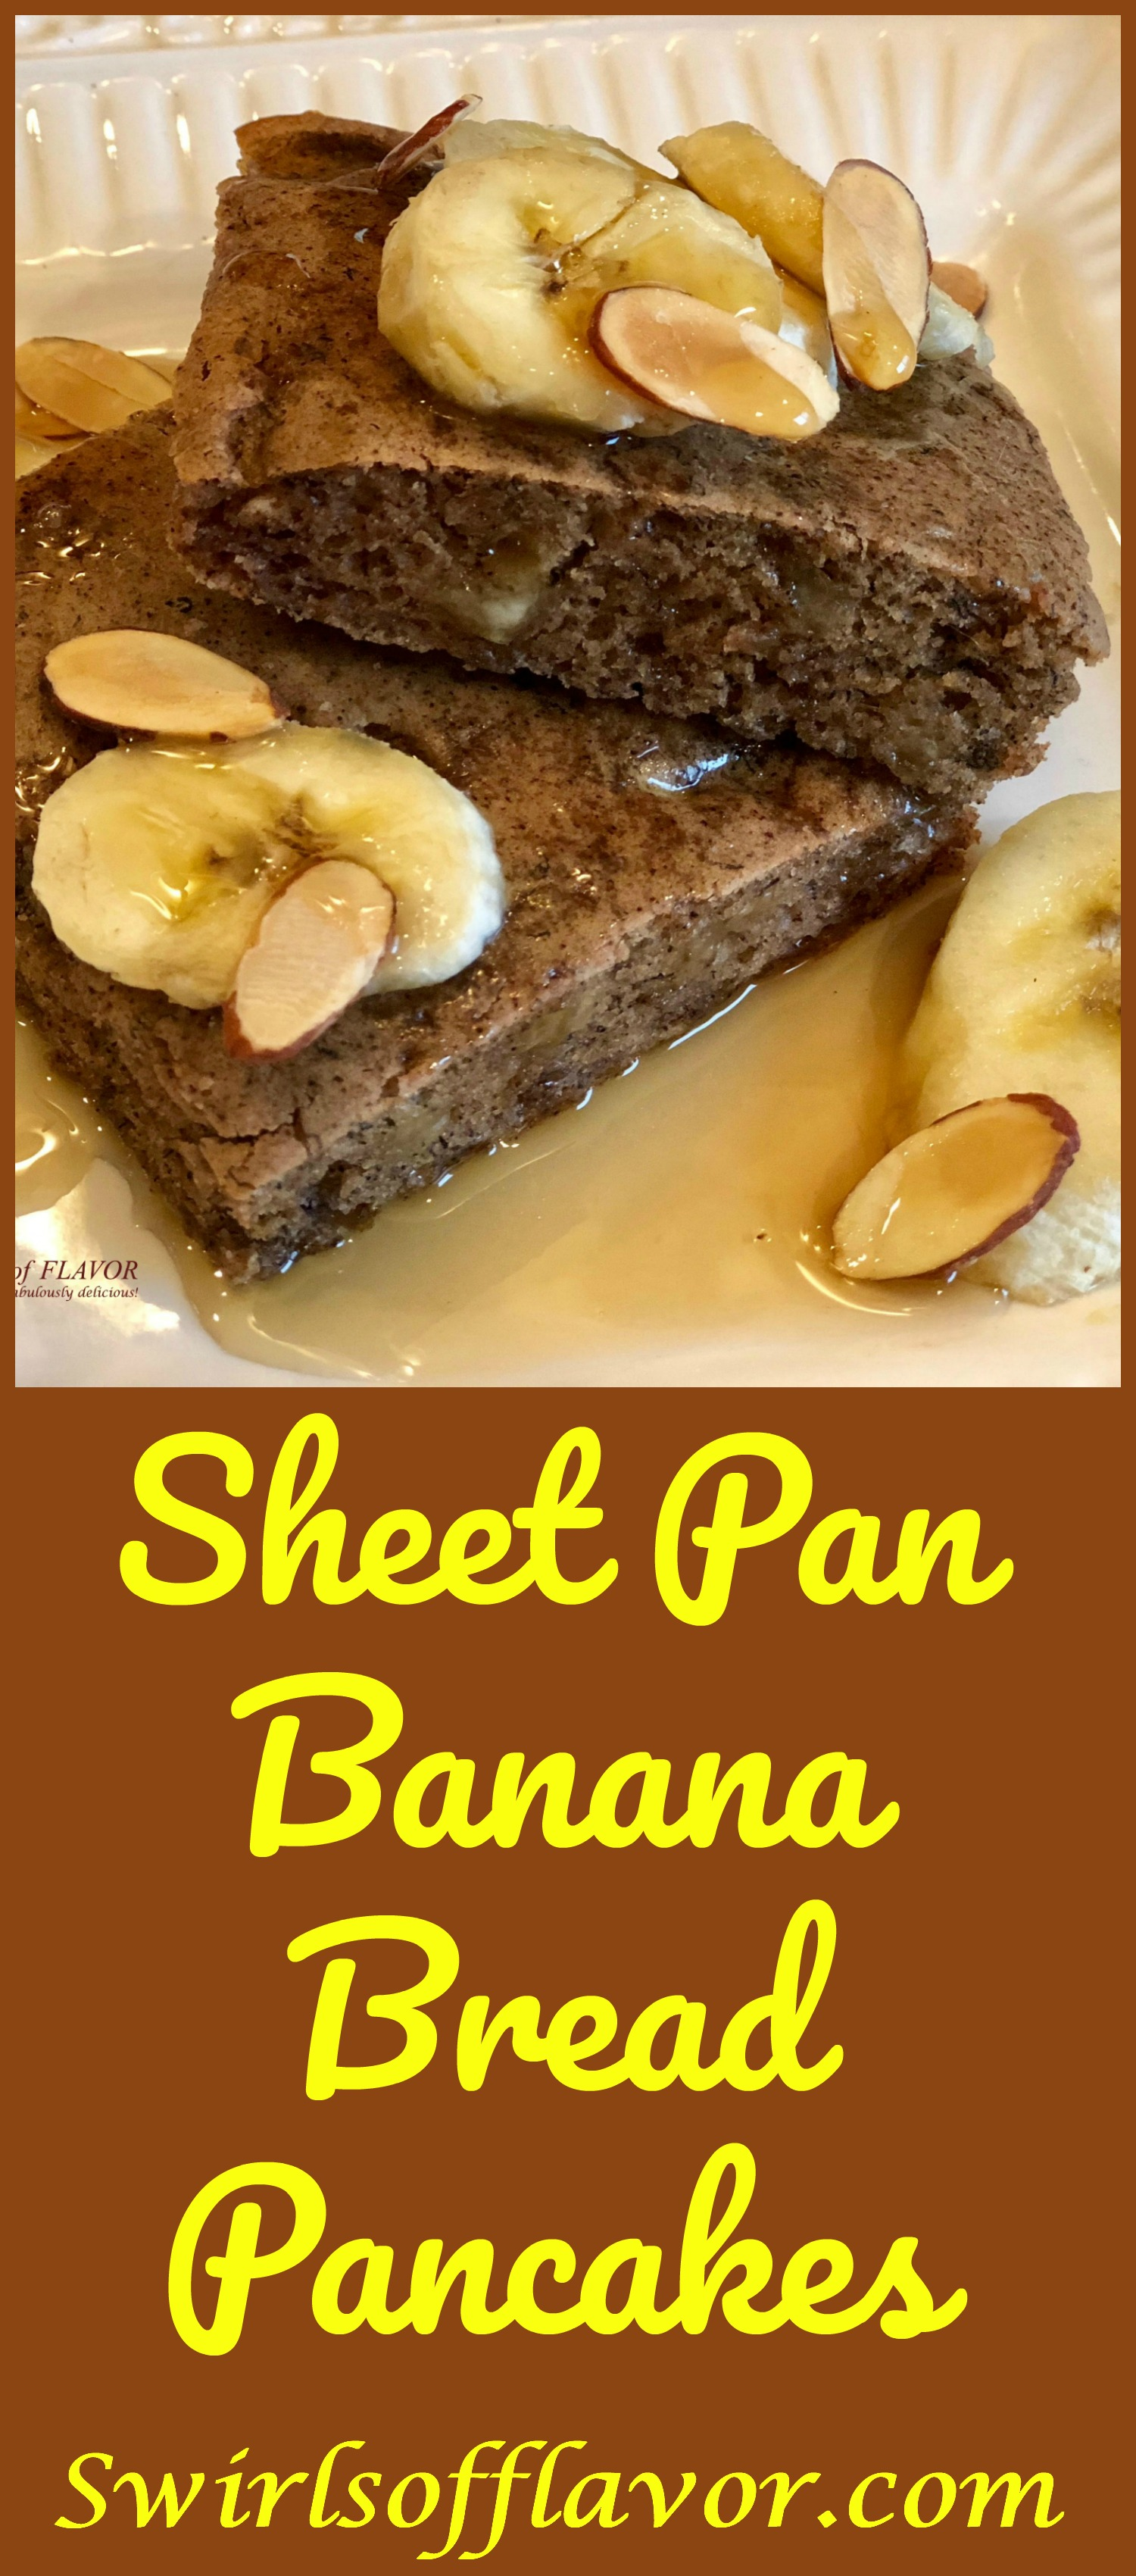 Sheet Pan Banana Bread Pancakes make mornings easier and oh so delicious! Brown sugar, cinnamon and bananas bake in a pancake batter in just minutes! sheet pan | breakfast | banana bread | easy | fun for kids | #swirlsofflavor